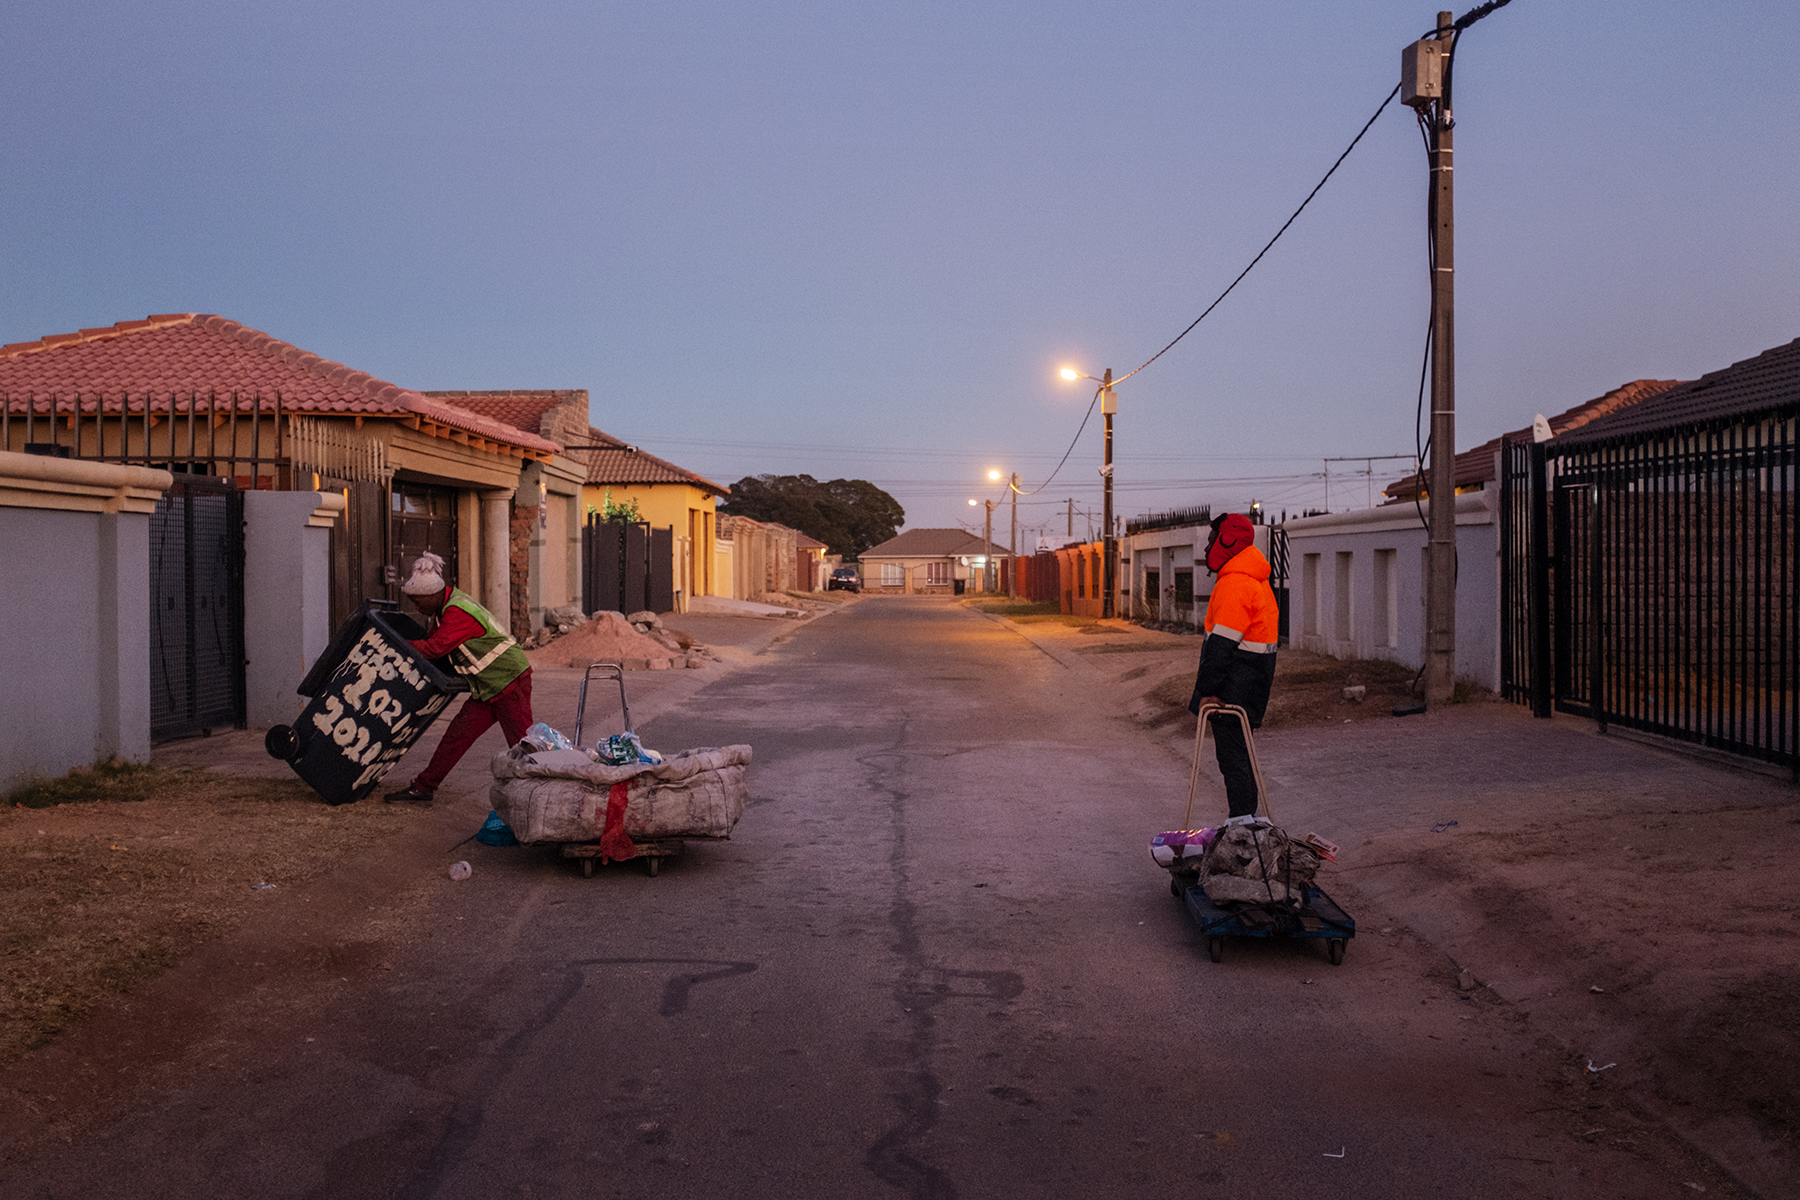 Scelo Sithole, 38, speaks with Tumelo Ikaneng, 21, while they collect waste from trash bins in the streets of Johannebsurg, South Africa in the early morning of June 12, 2019.